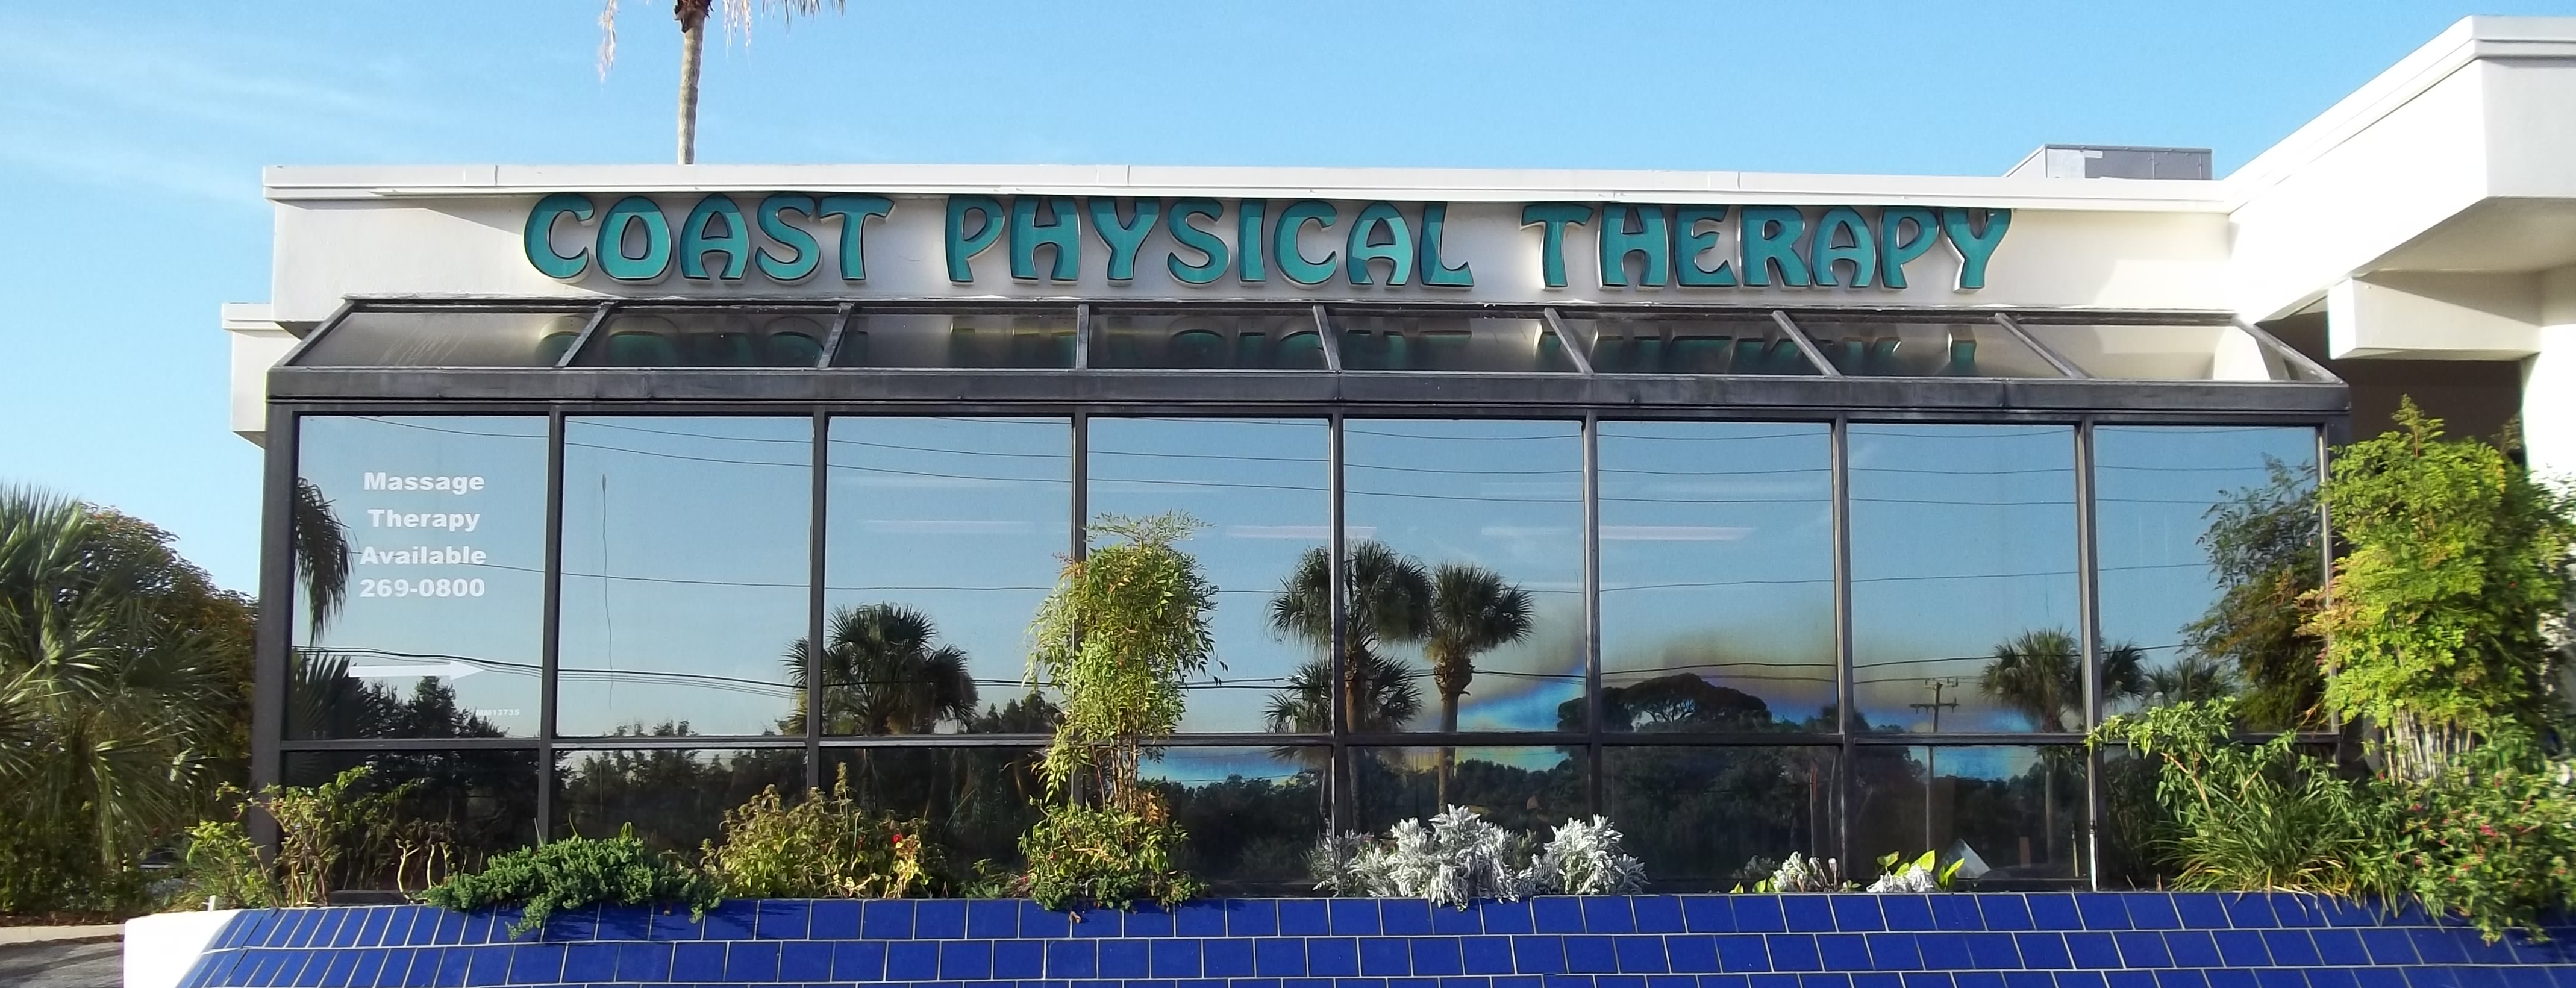 Coast Physical Therapy Clinic and Facility, View from Outside